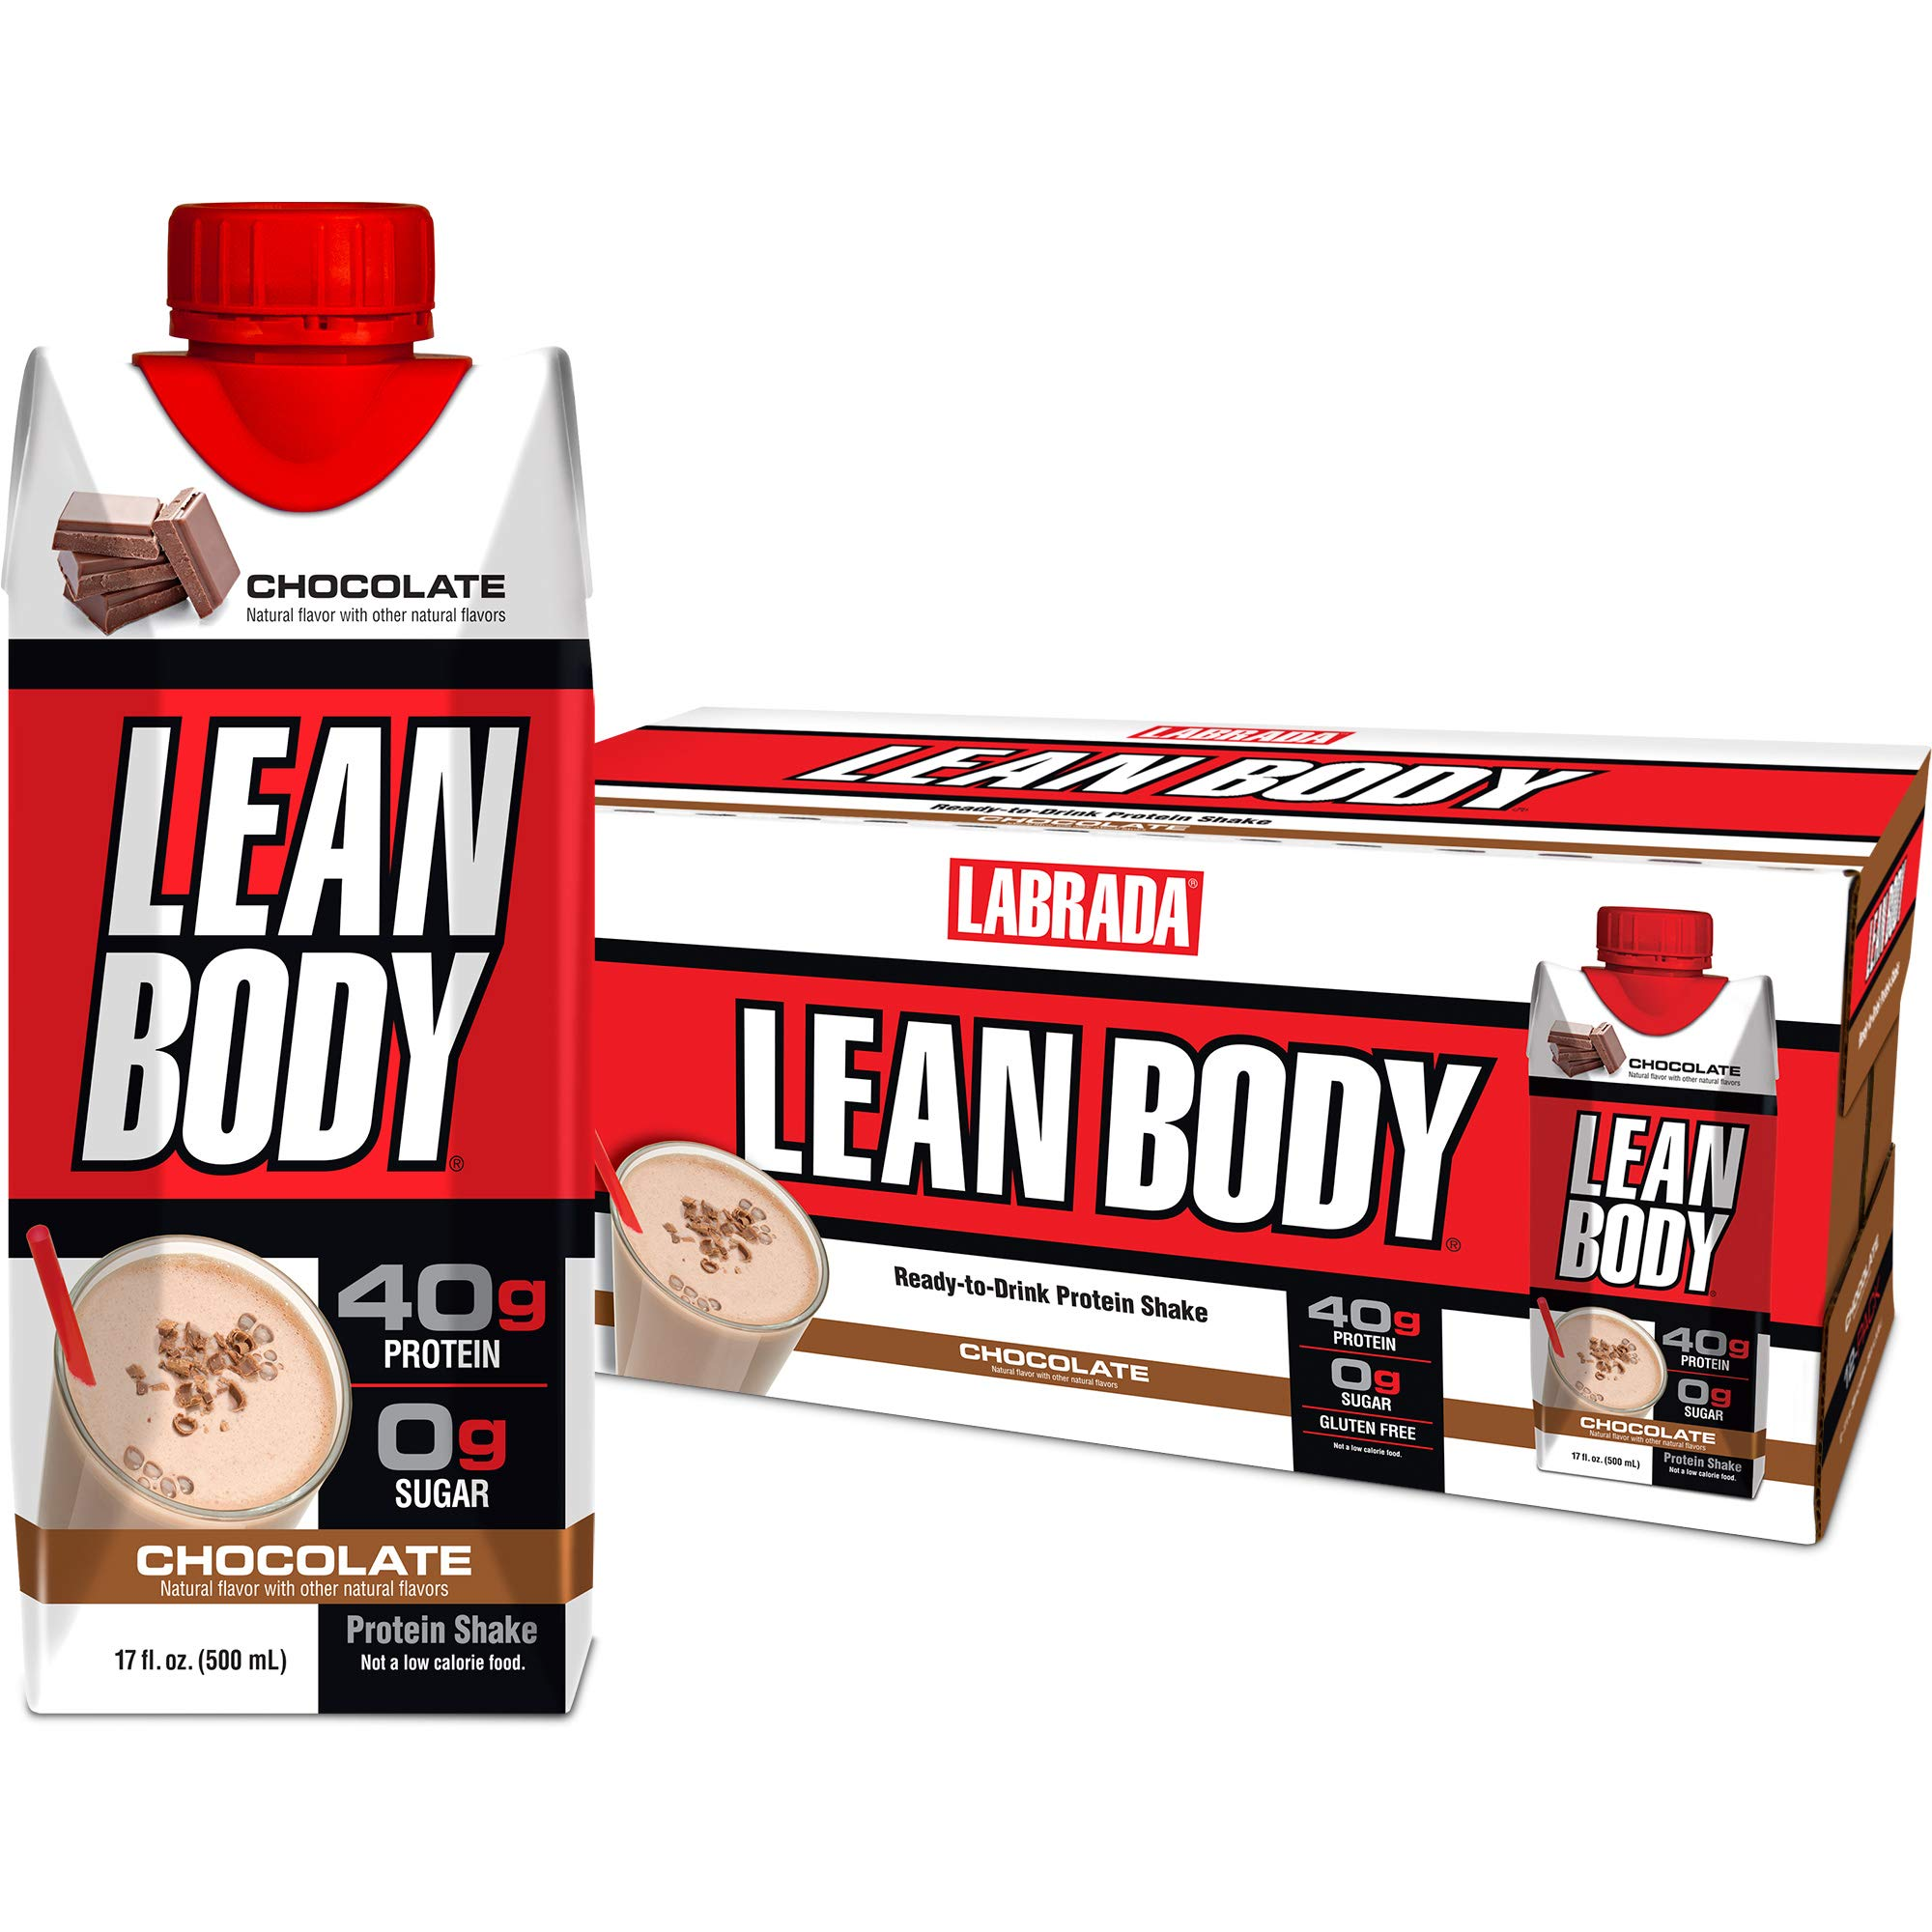 LABRADA - Lean Body Ready To Drink Whey Protein Shake, Convenient On-The-Go Meal Replacement Shake for Men & Women, 40 grams of Protein - Zero Sugar, Lactose & Gluten Free, Chocolate (Pack of 12) by Labrada